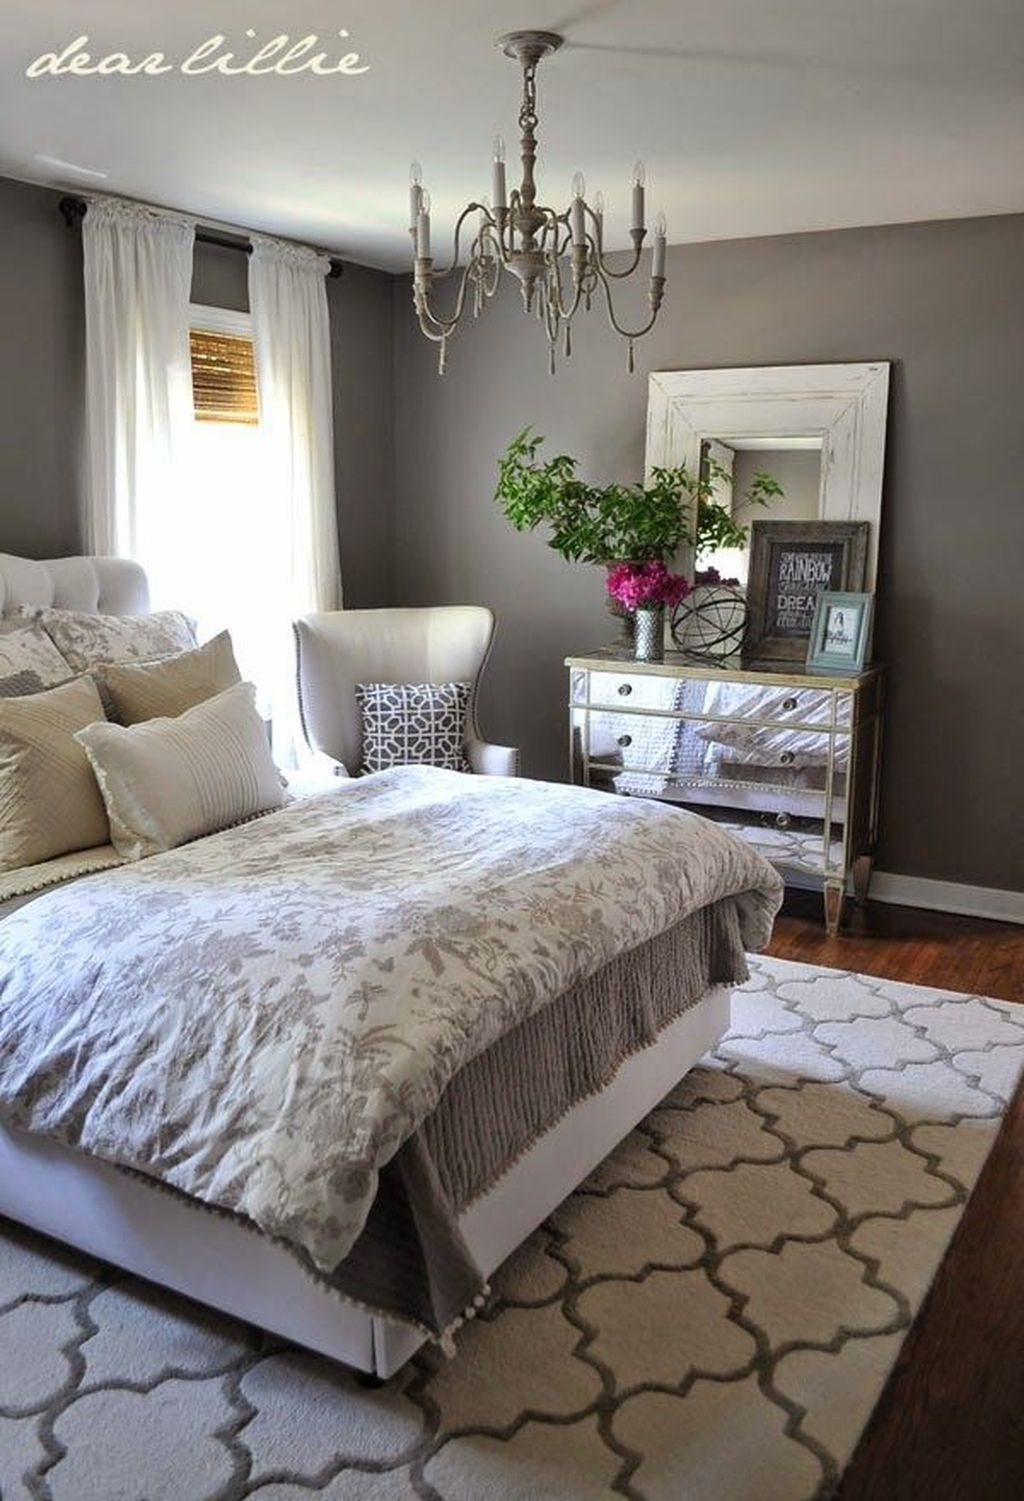 Elegant Small Master Bedroom Inspirations On A Budget For the